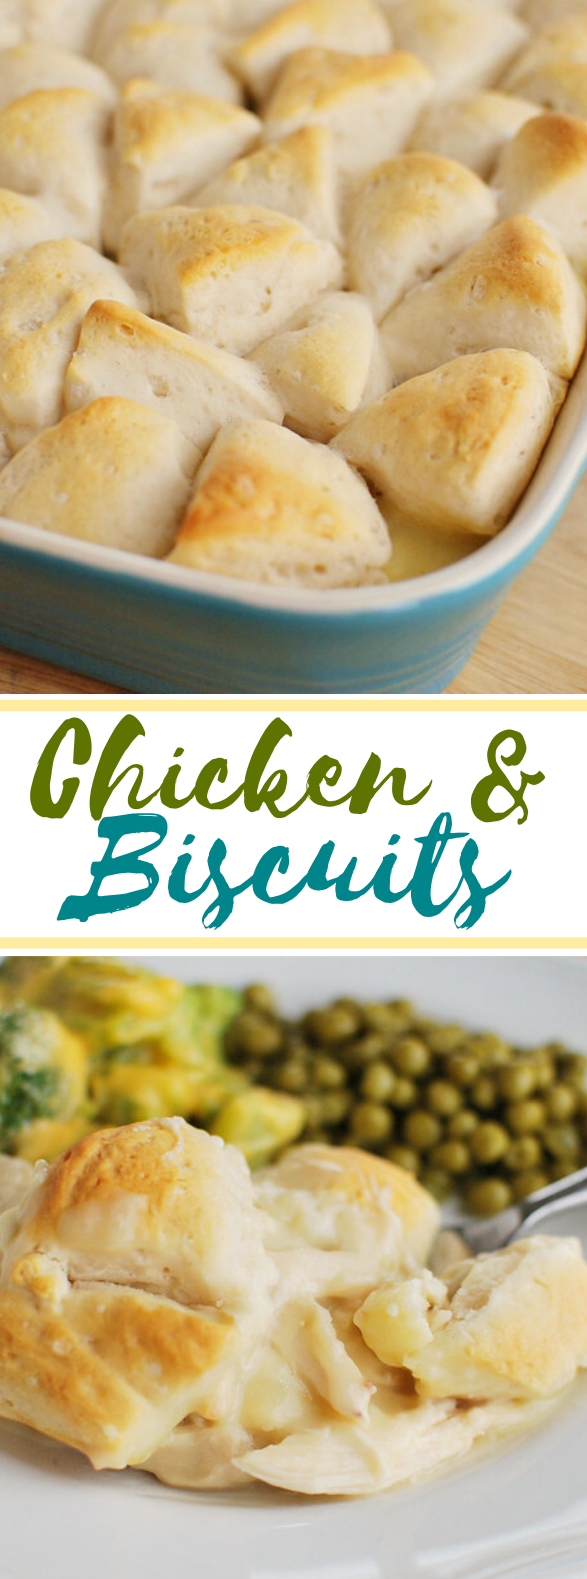 Chicken and Biscuits #dinner #familyrecipes